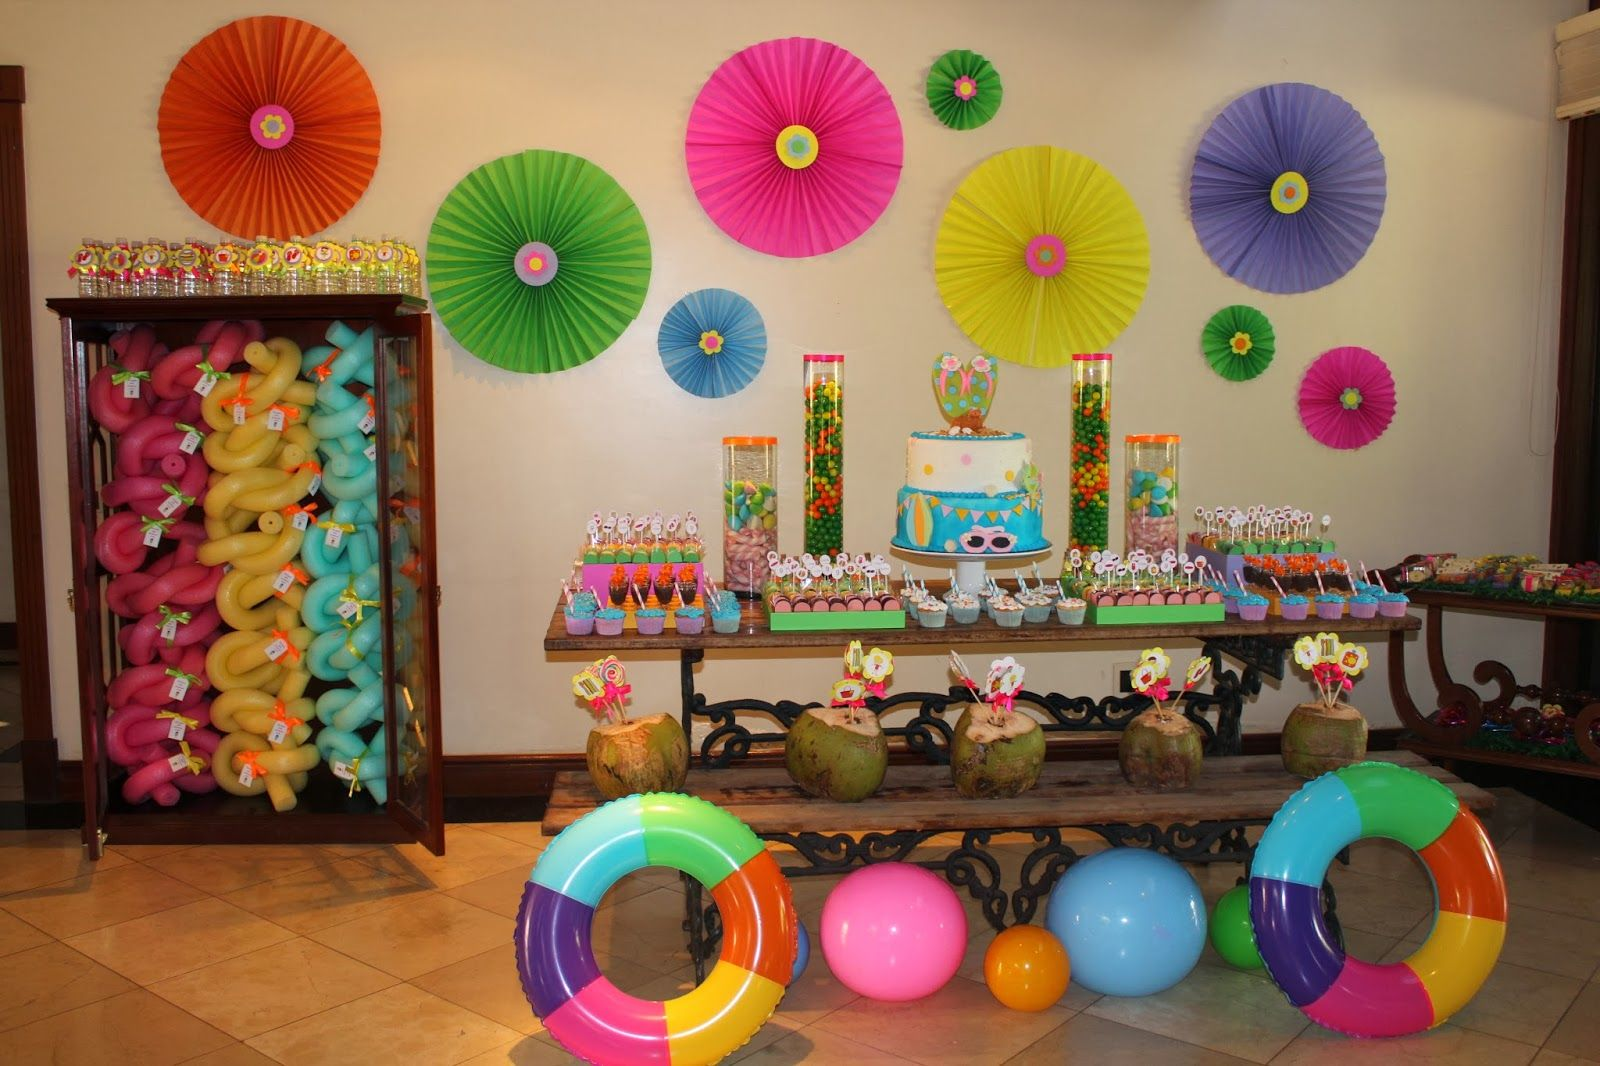 Pool party decora o pesquisa google lillian 39 s - Ideas para cumpleanos en piscina ...